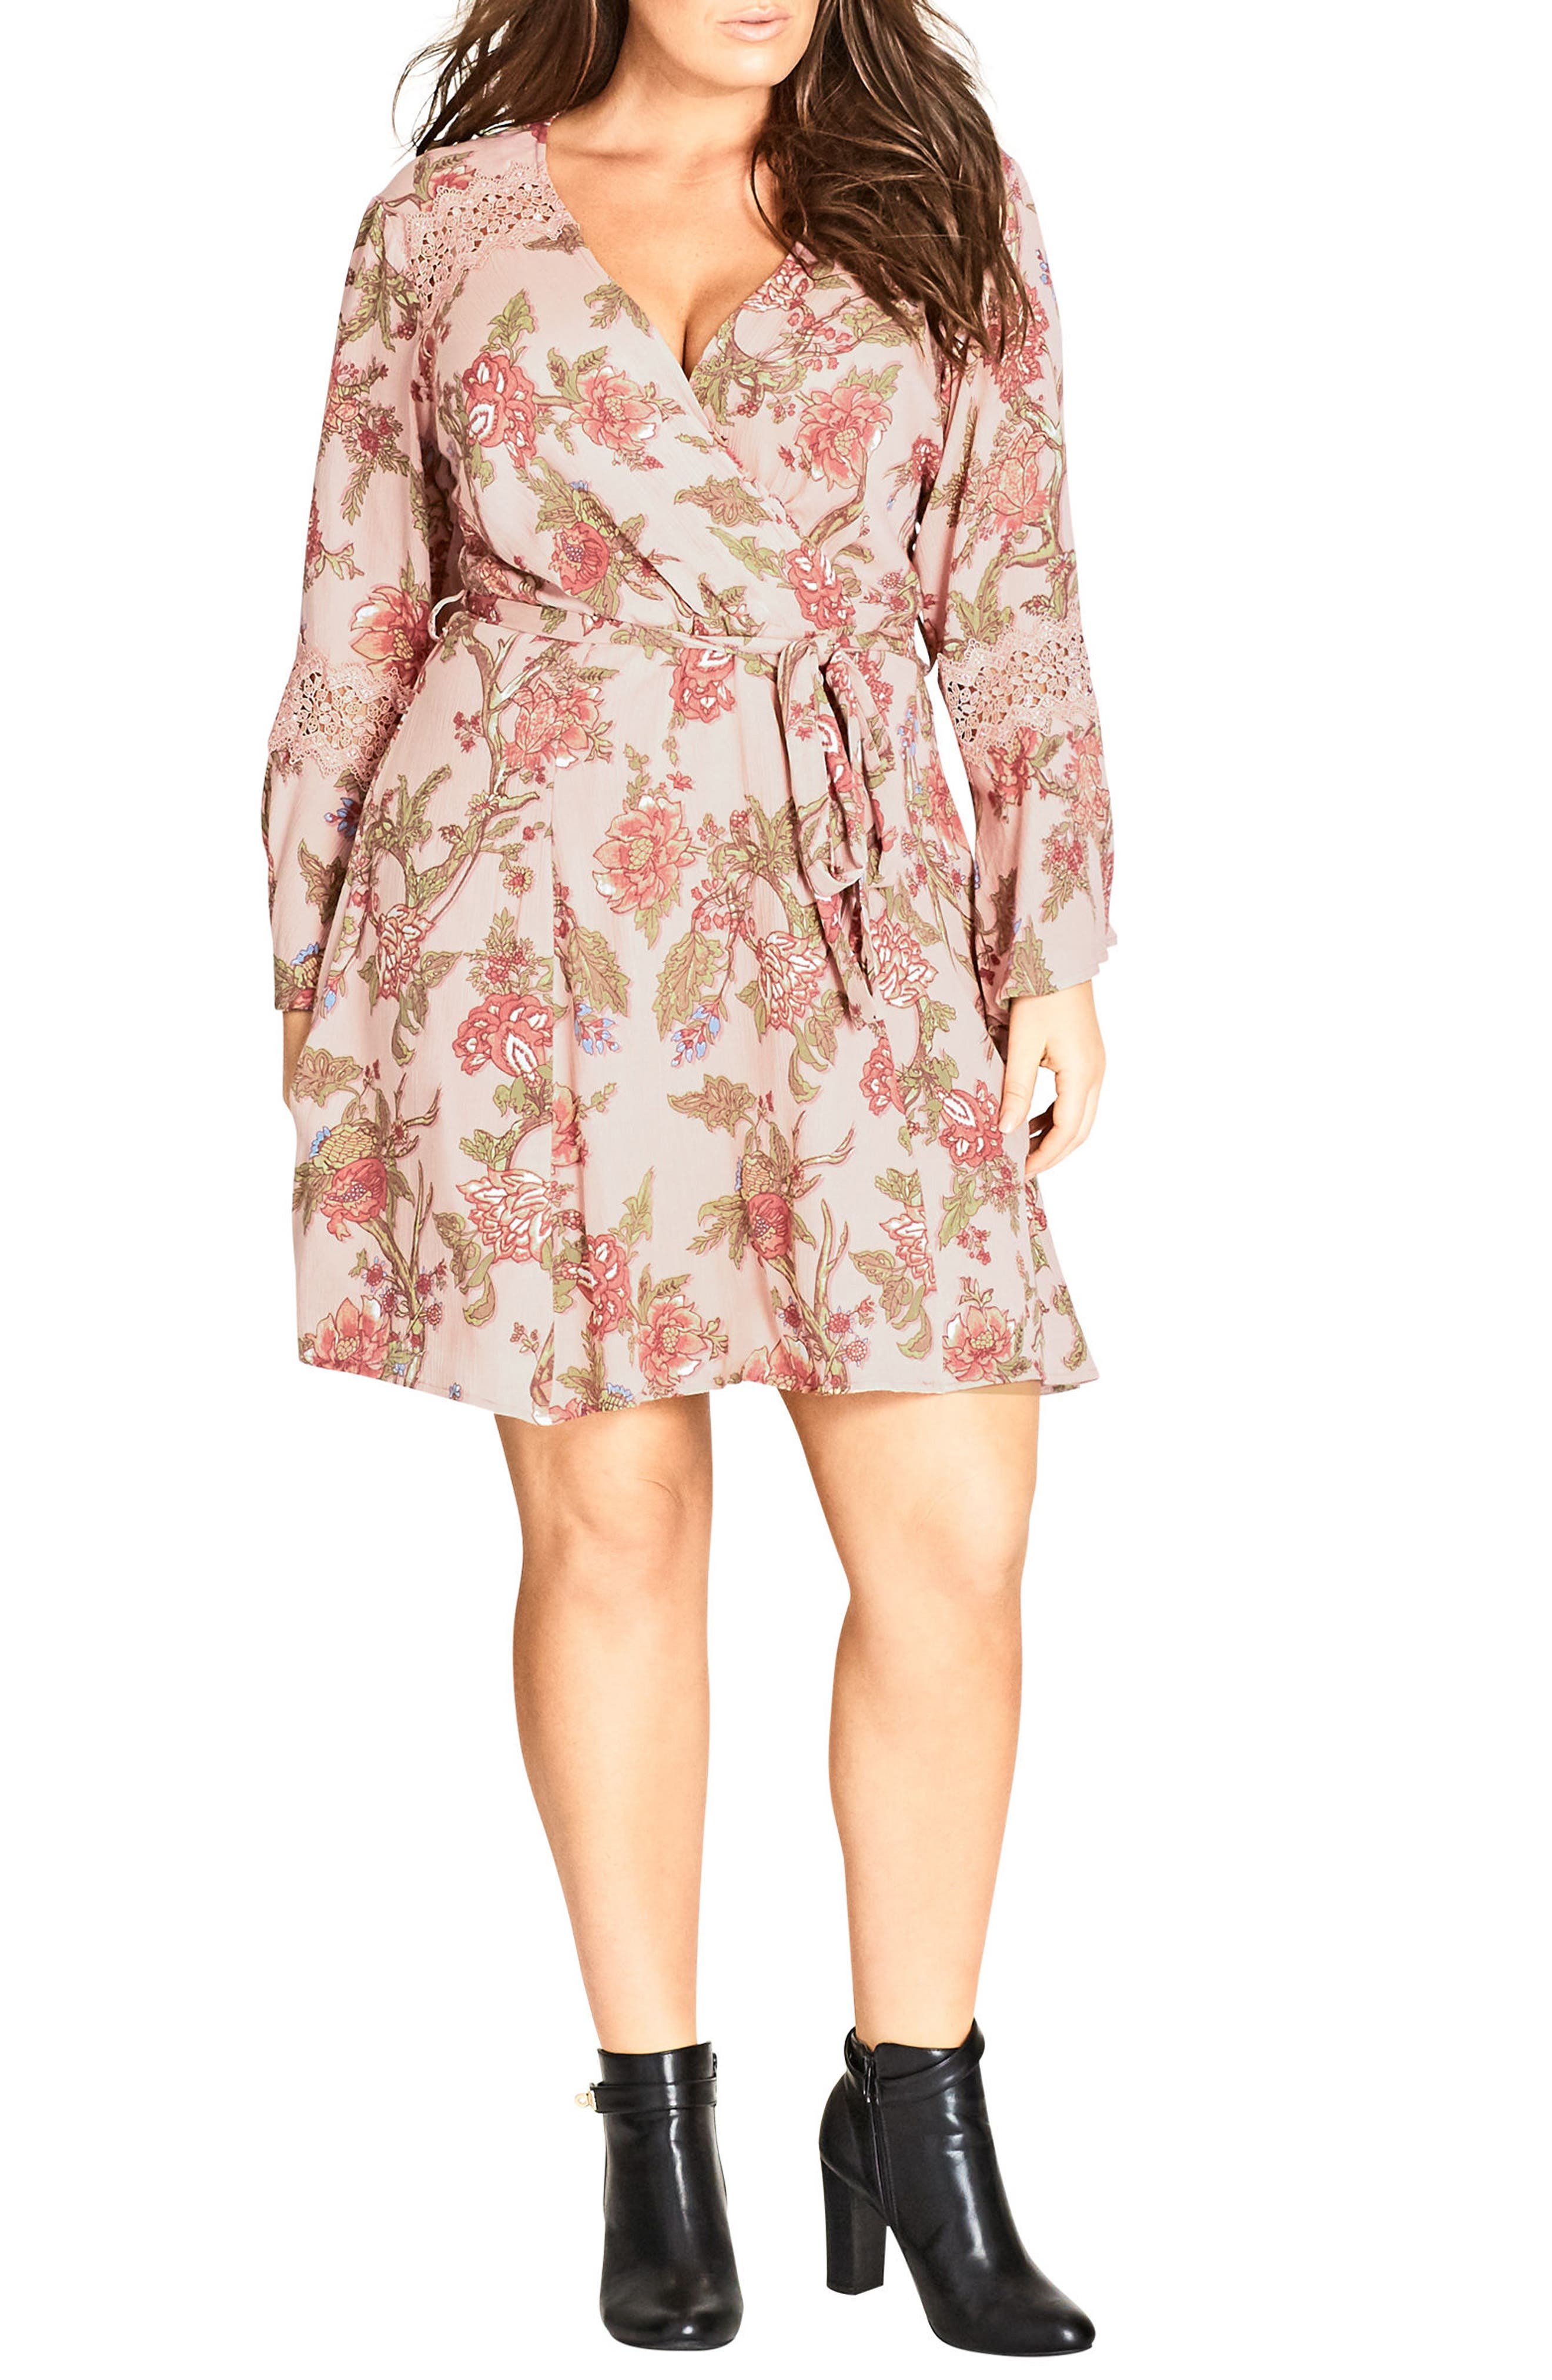 Alternate Image 1 Selected - City Chic Floral Print Wrap Dress (Plus Size)